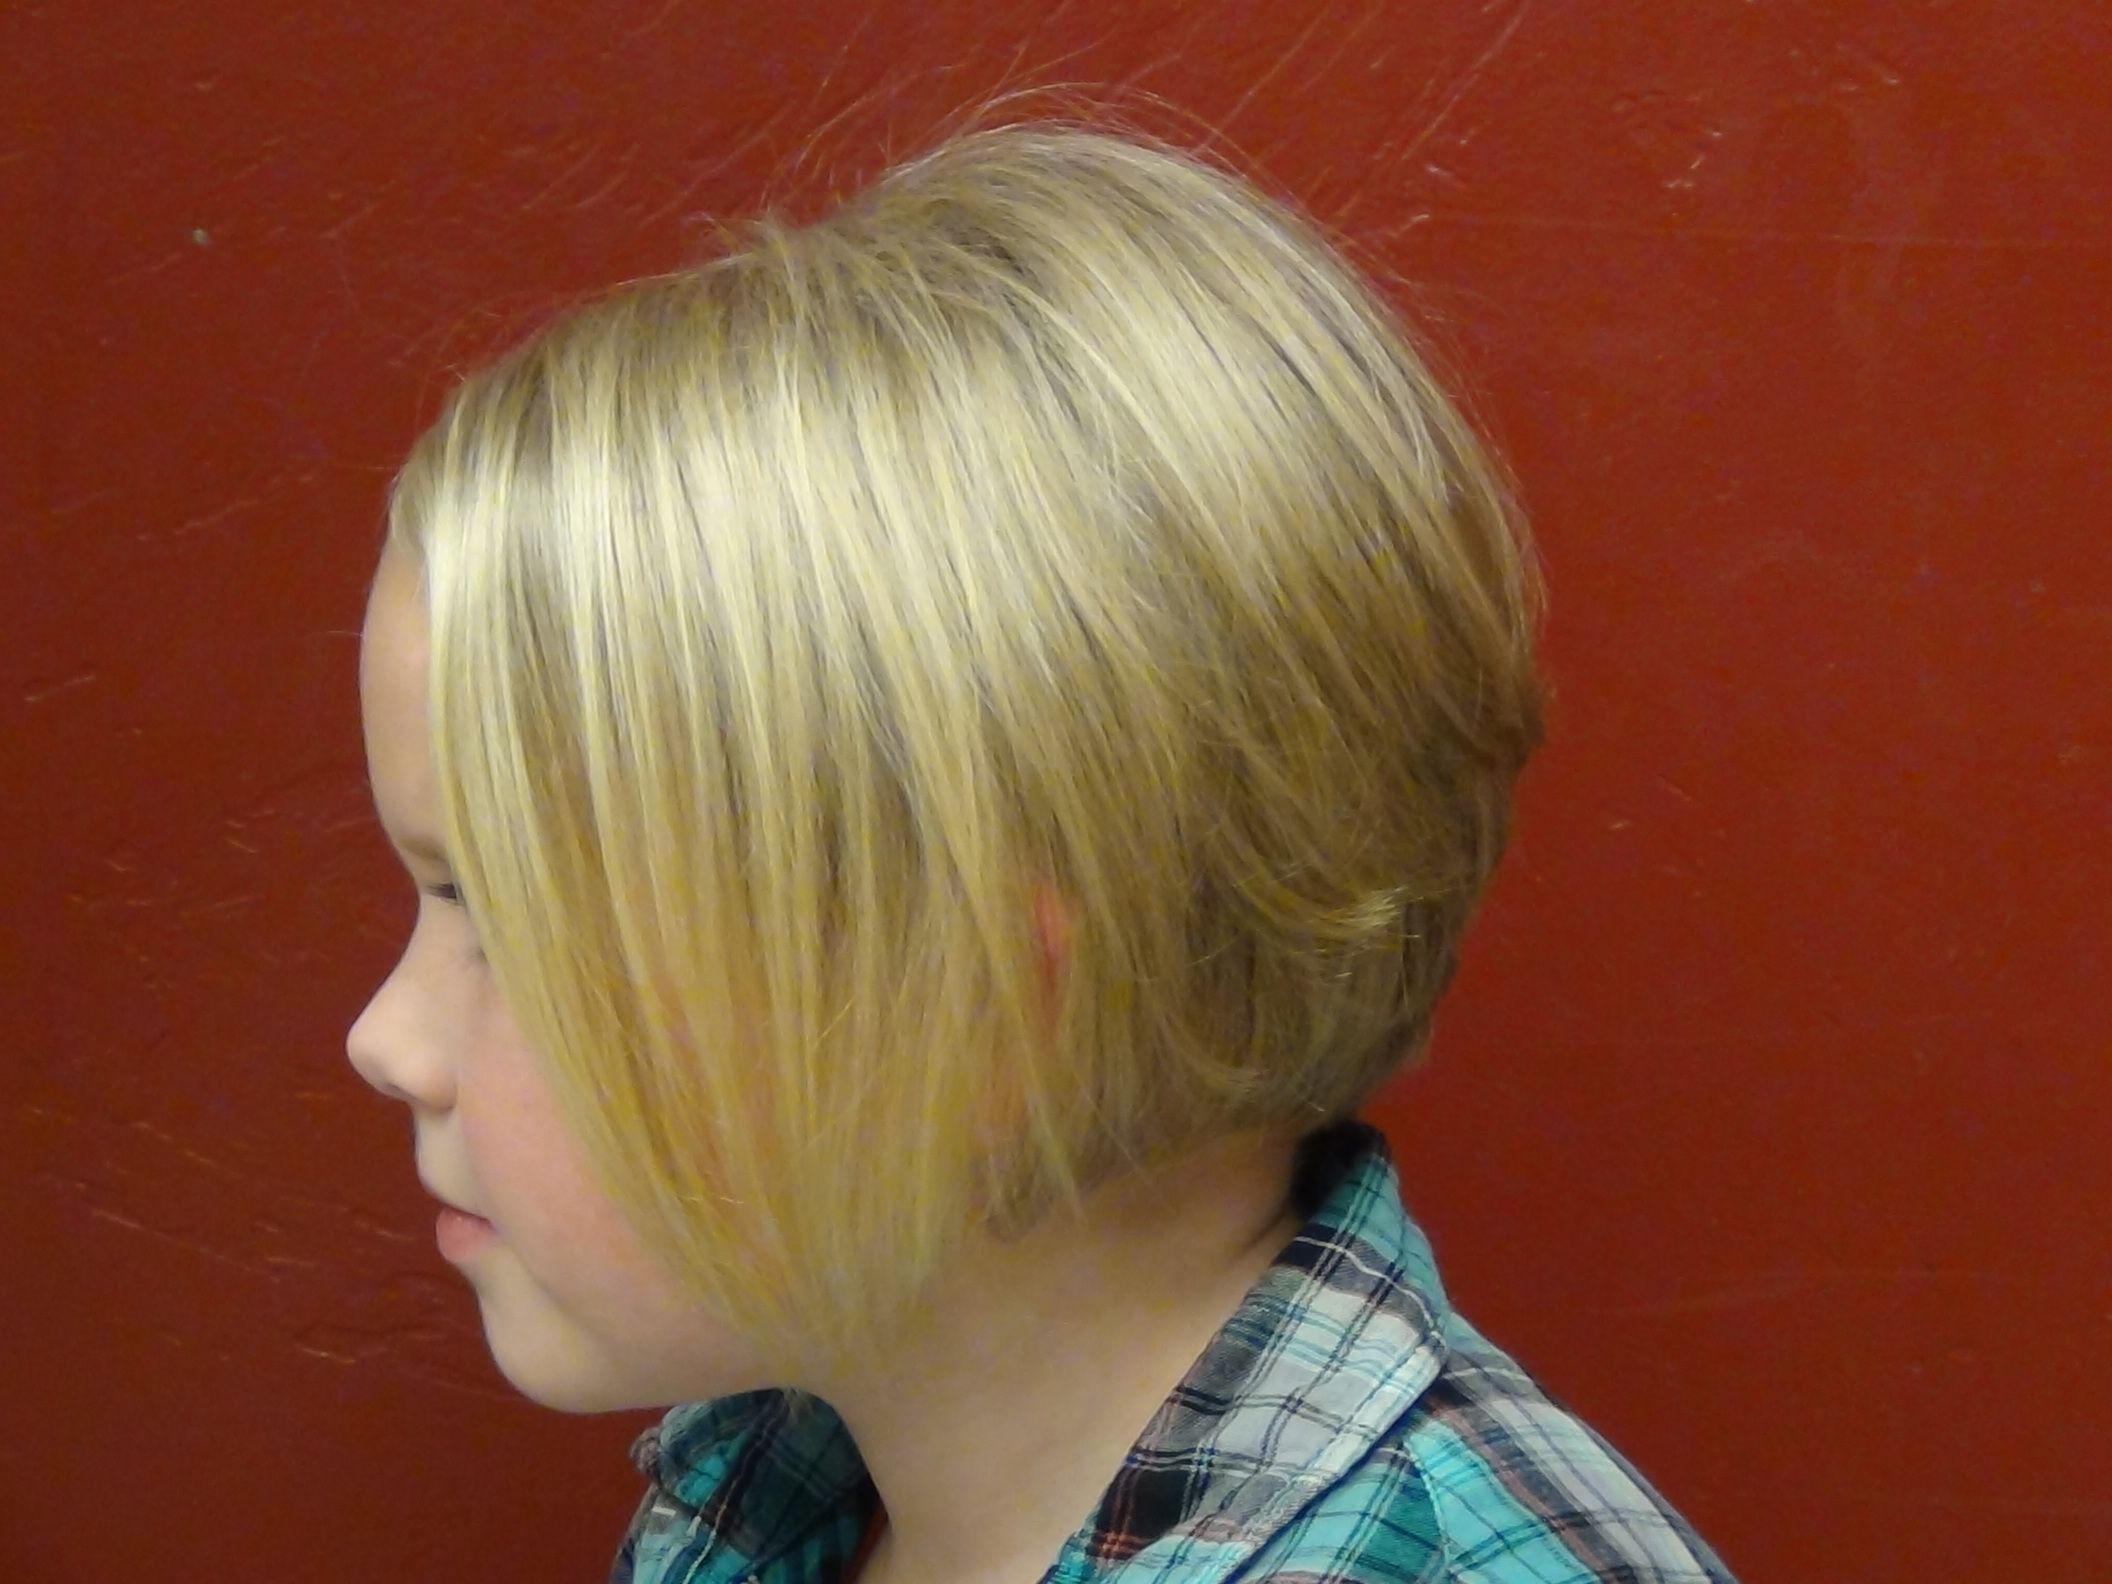 Remarkable Bob Haircuts For Little Girls Boys And Girls Hair Styles Hairstyles For Men Maxibearus